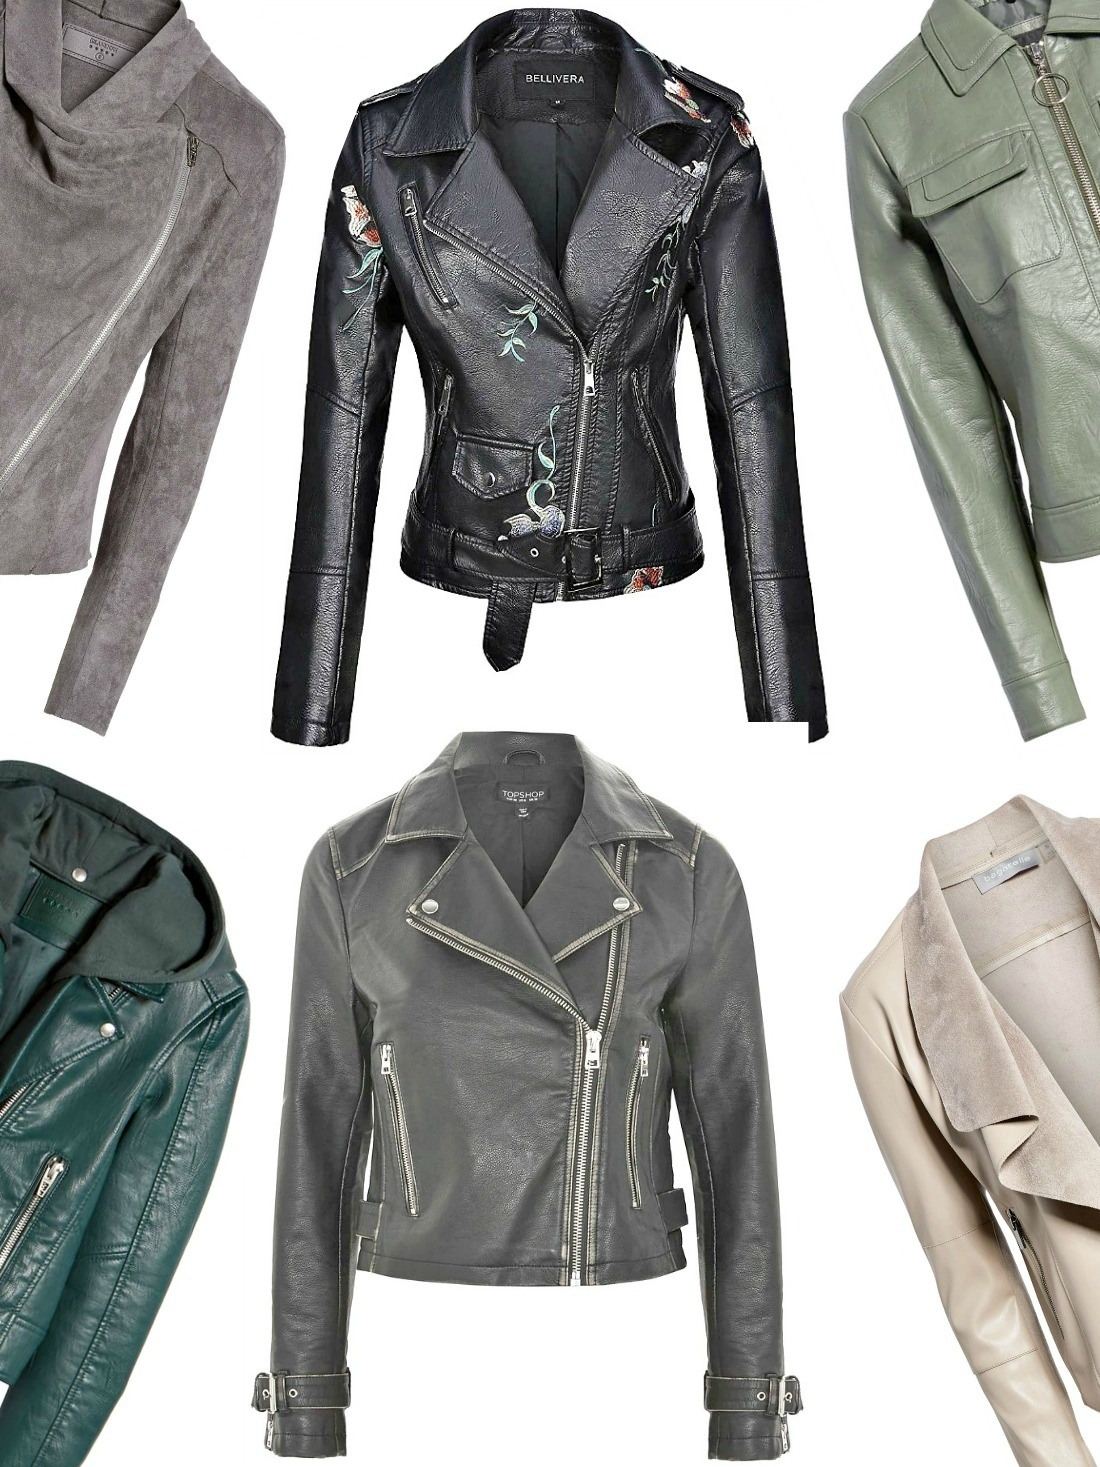 Women's leather jacket is the most popular outerwear choice for transitional weather. Here are 7 styles for under $100 and they're cute,too. Take a look!